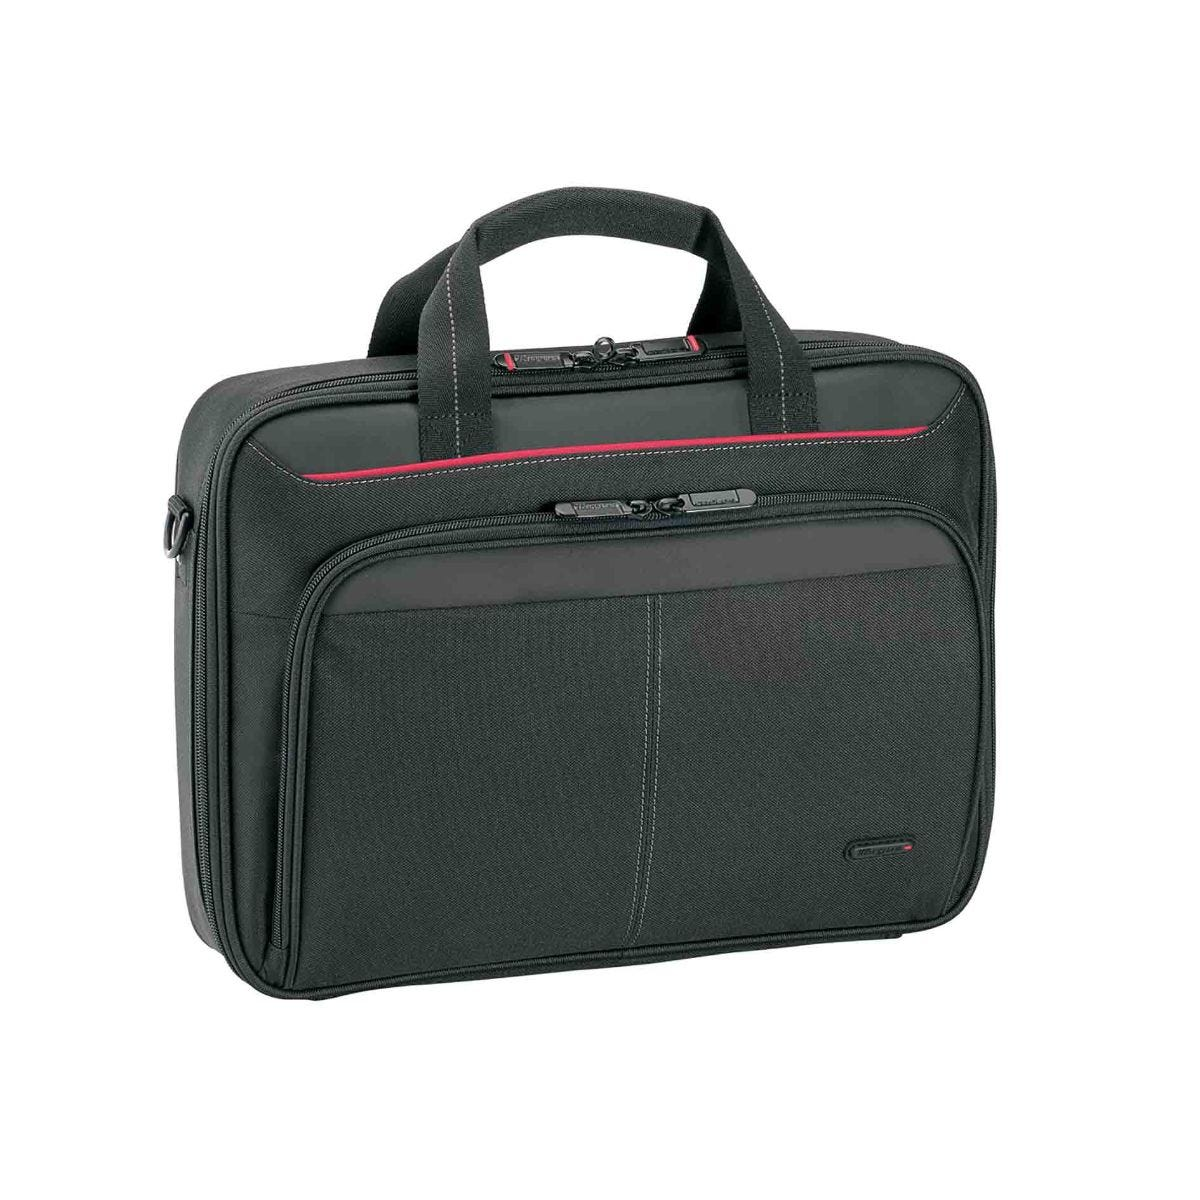 Image of Targus Classic Clamshell Laptop Bag 12-13.4 Inch, Black